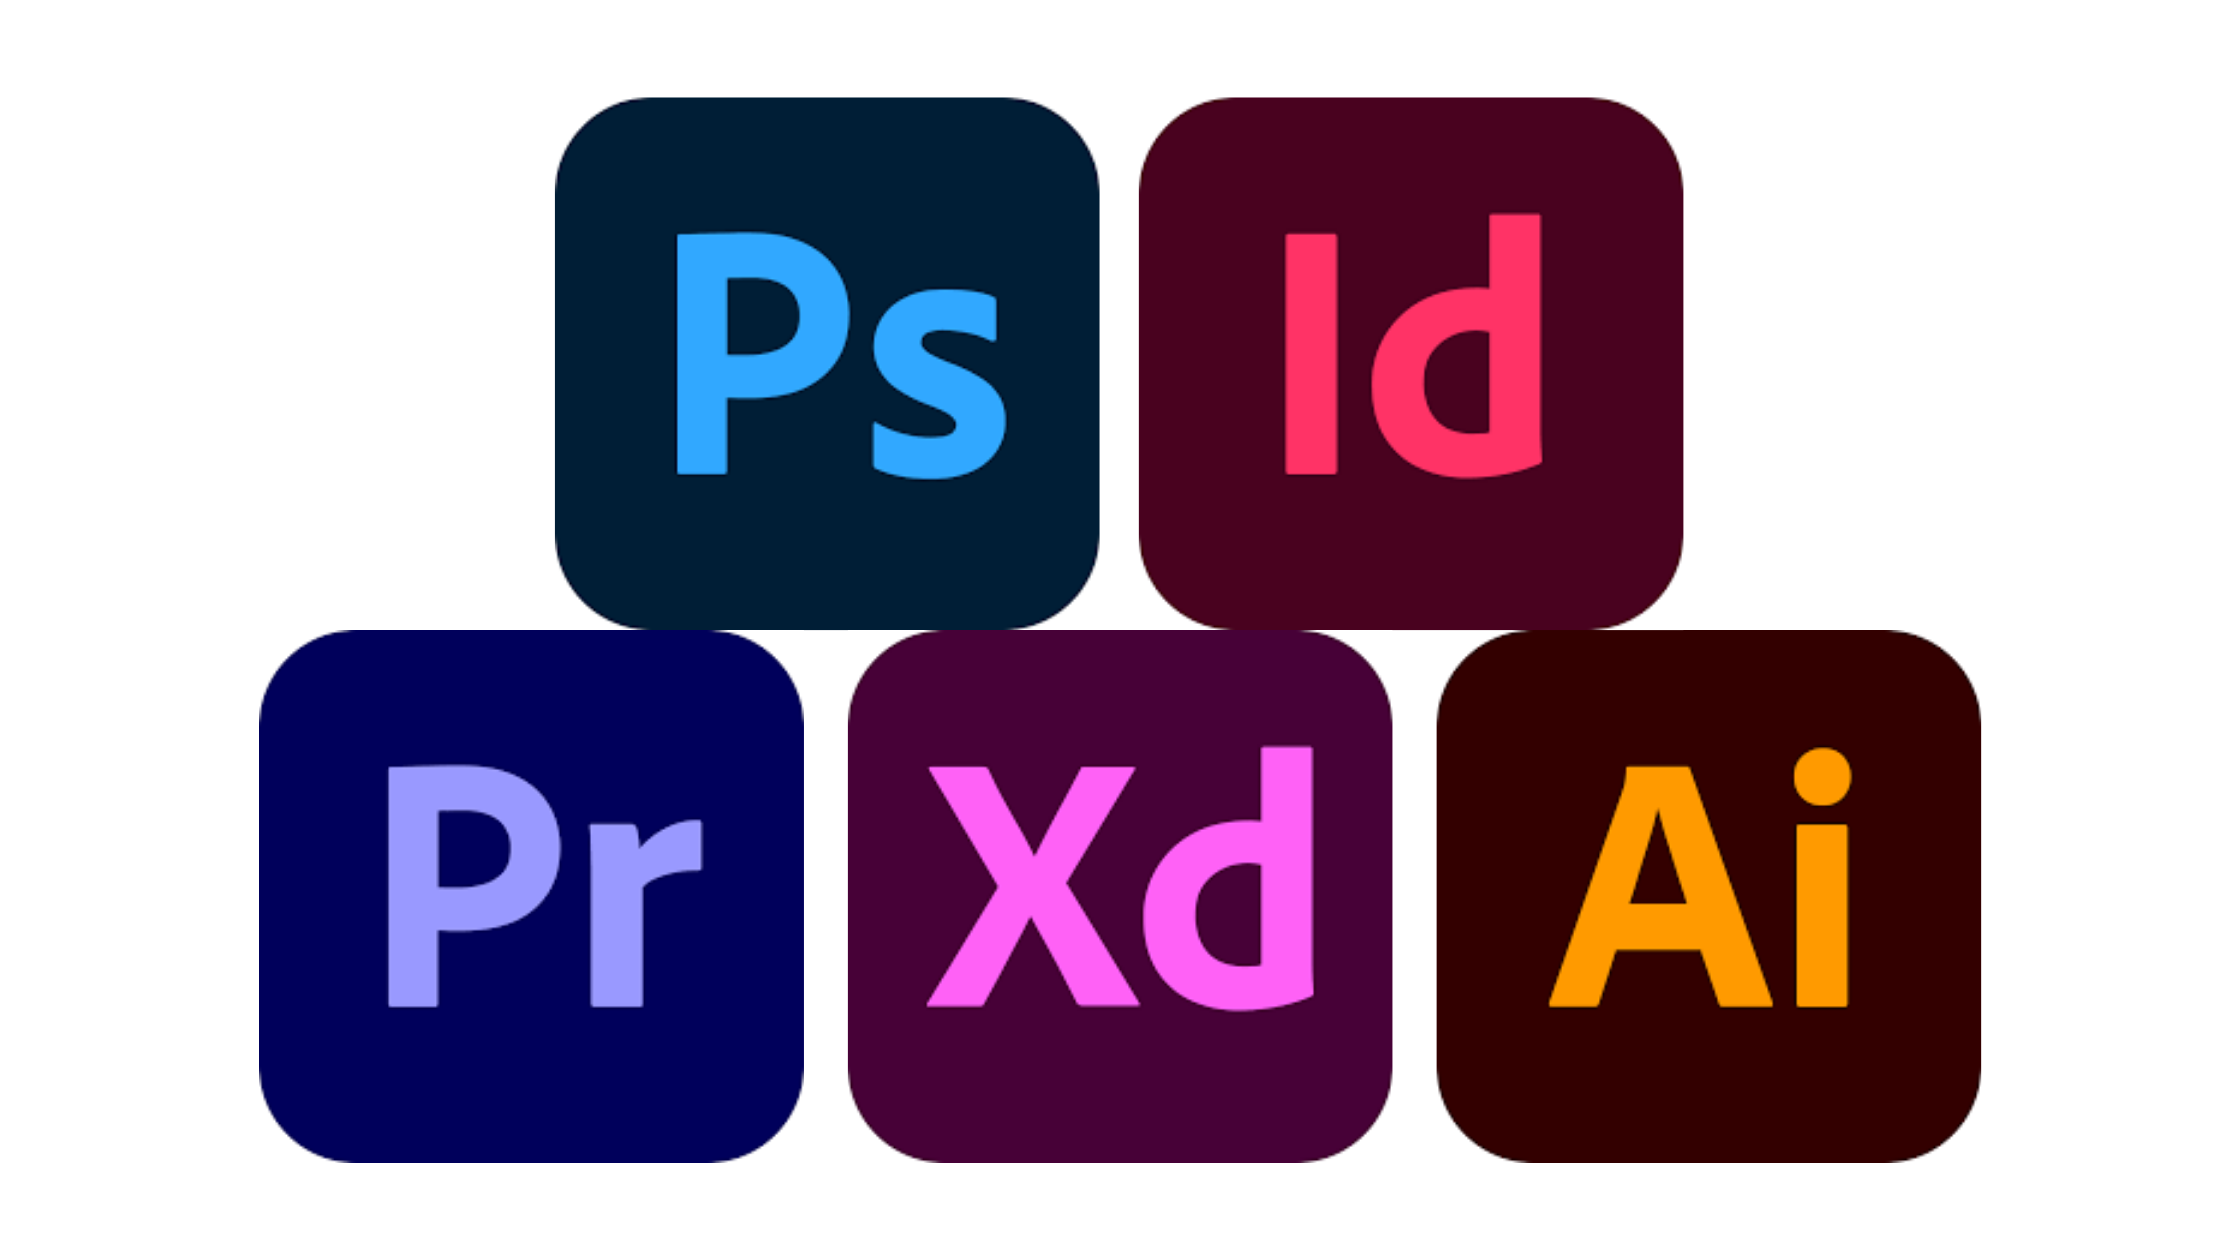 Adobe logos for photoshop indesign premiere pro xd and illustrator